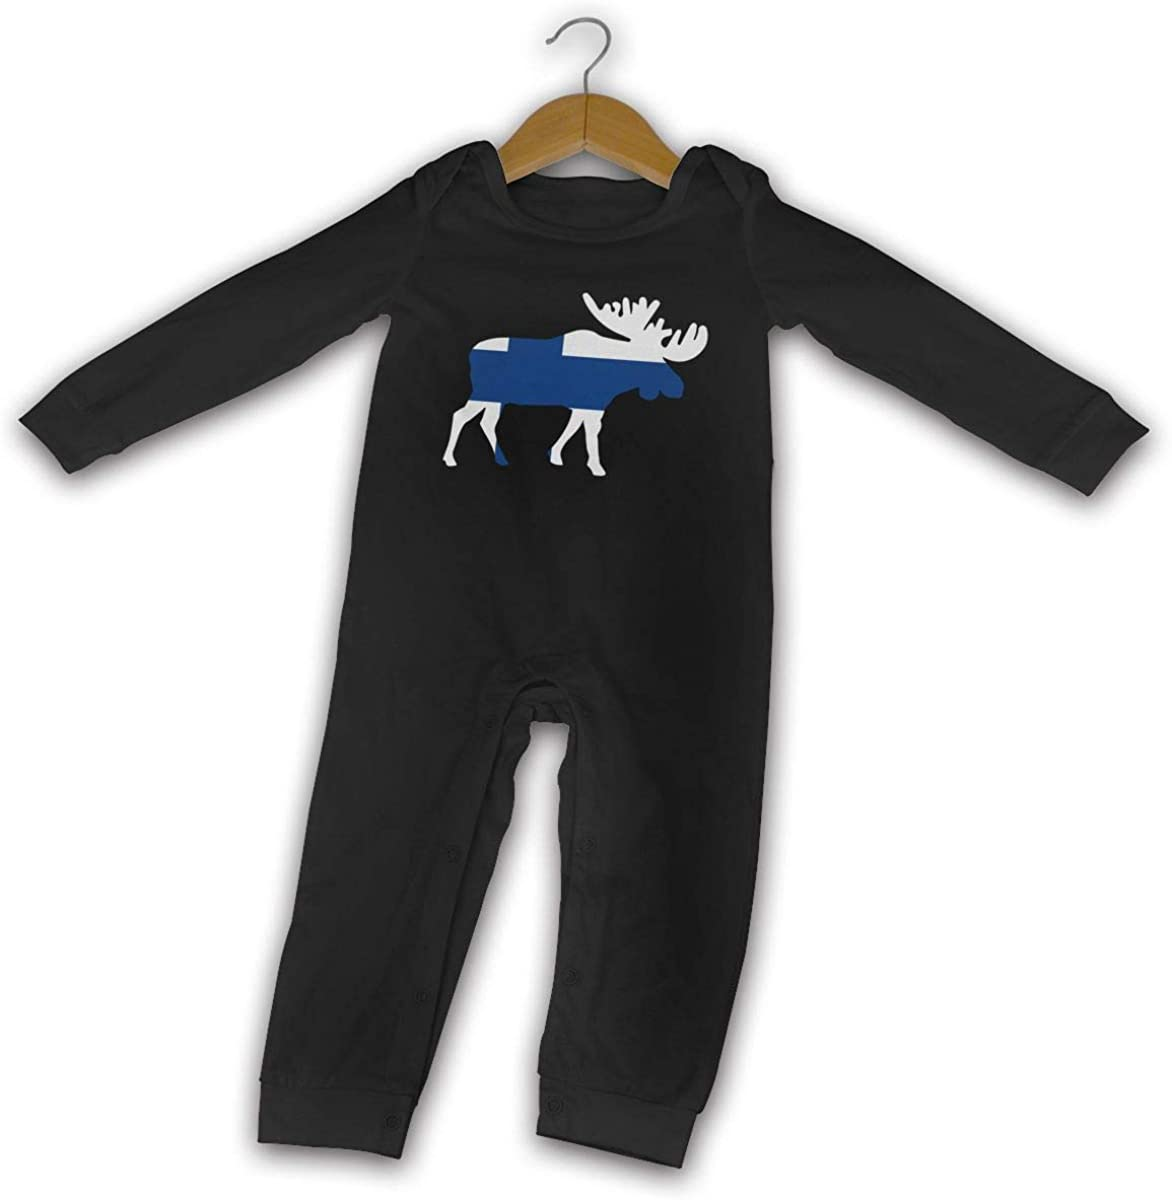 Retro Style Brooklyn Silhouette Newborn Baby Long-Sleeved Printed Playsuit Outfit